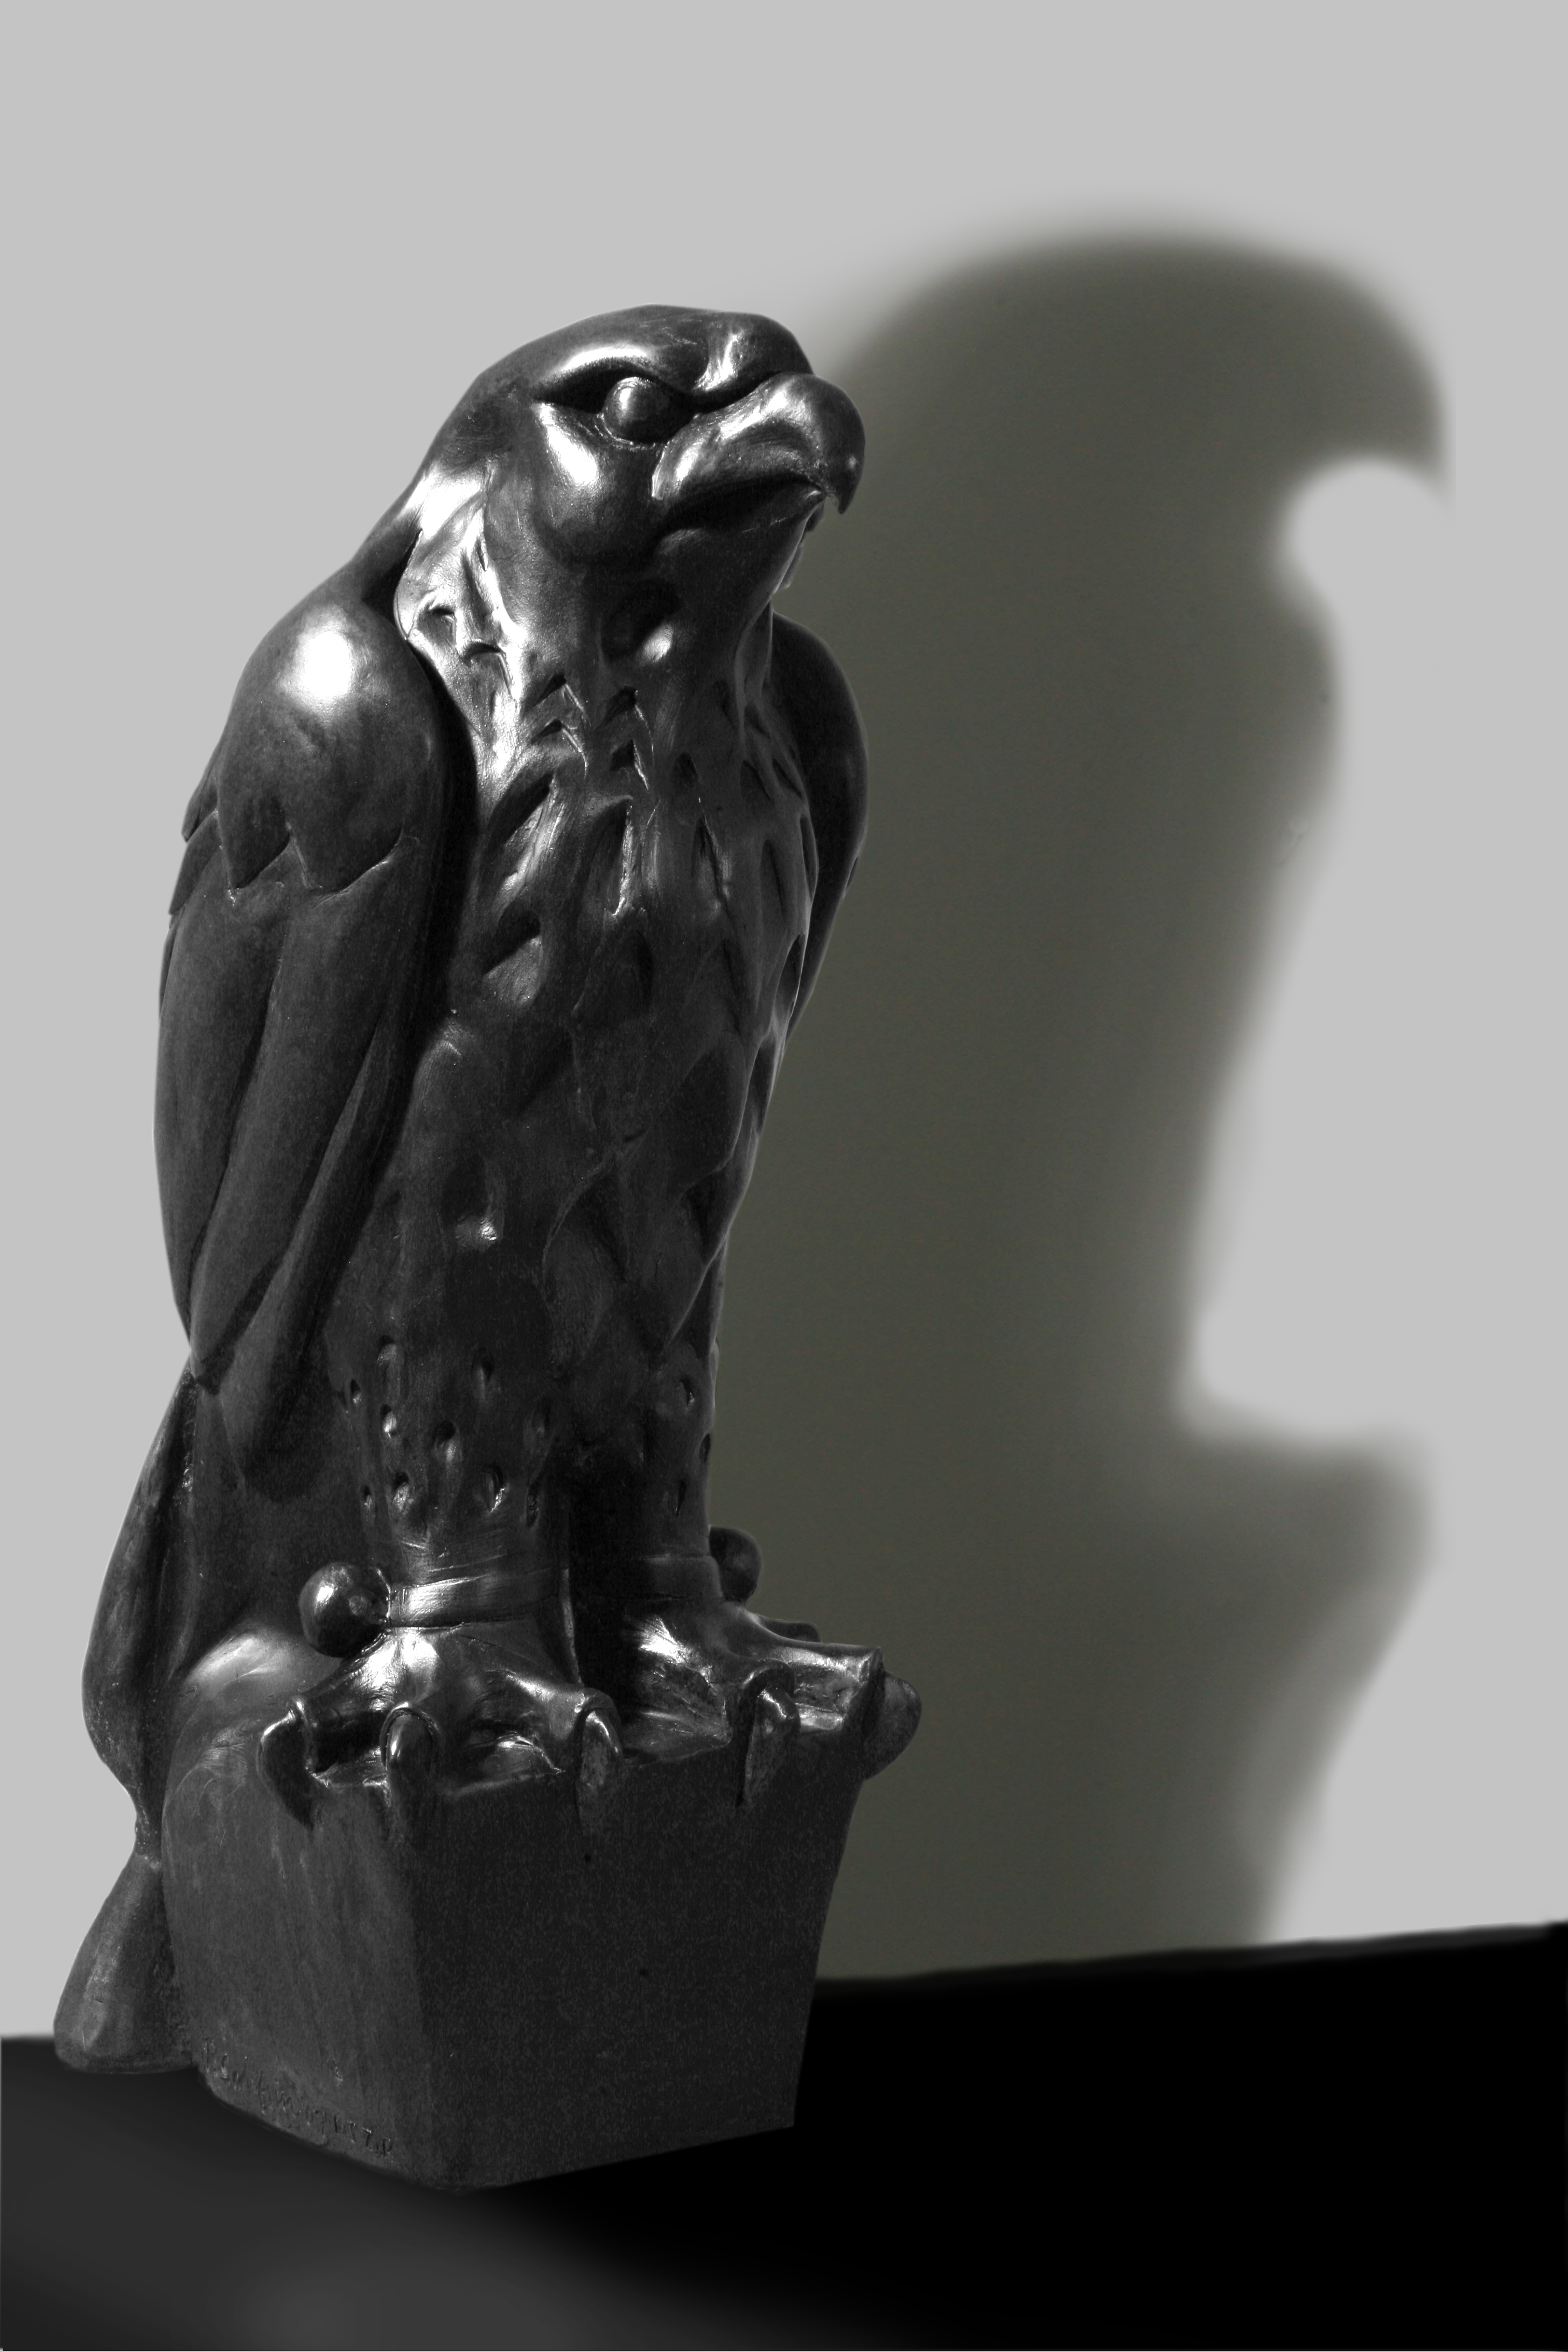 The Maltese Falcon Meets Five Million Dollar Solid Gold and Diamond Encrusted Maltese Eagle for ...